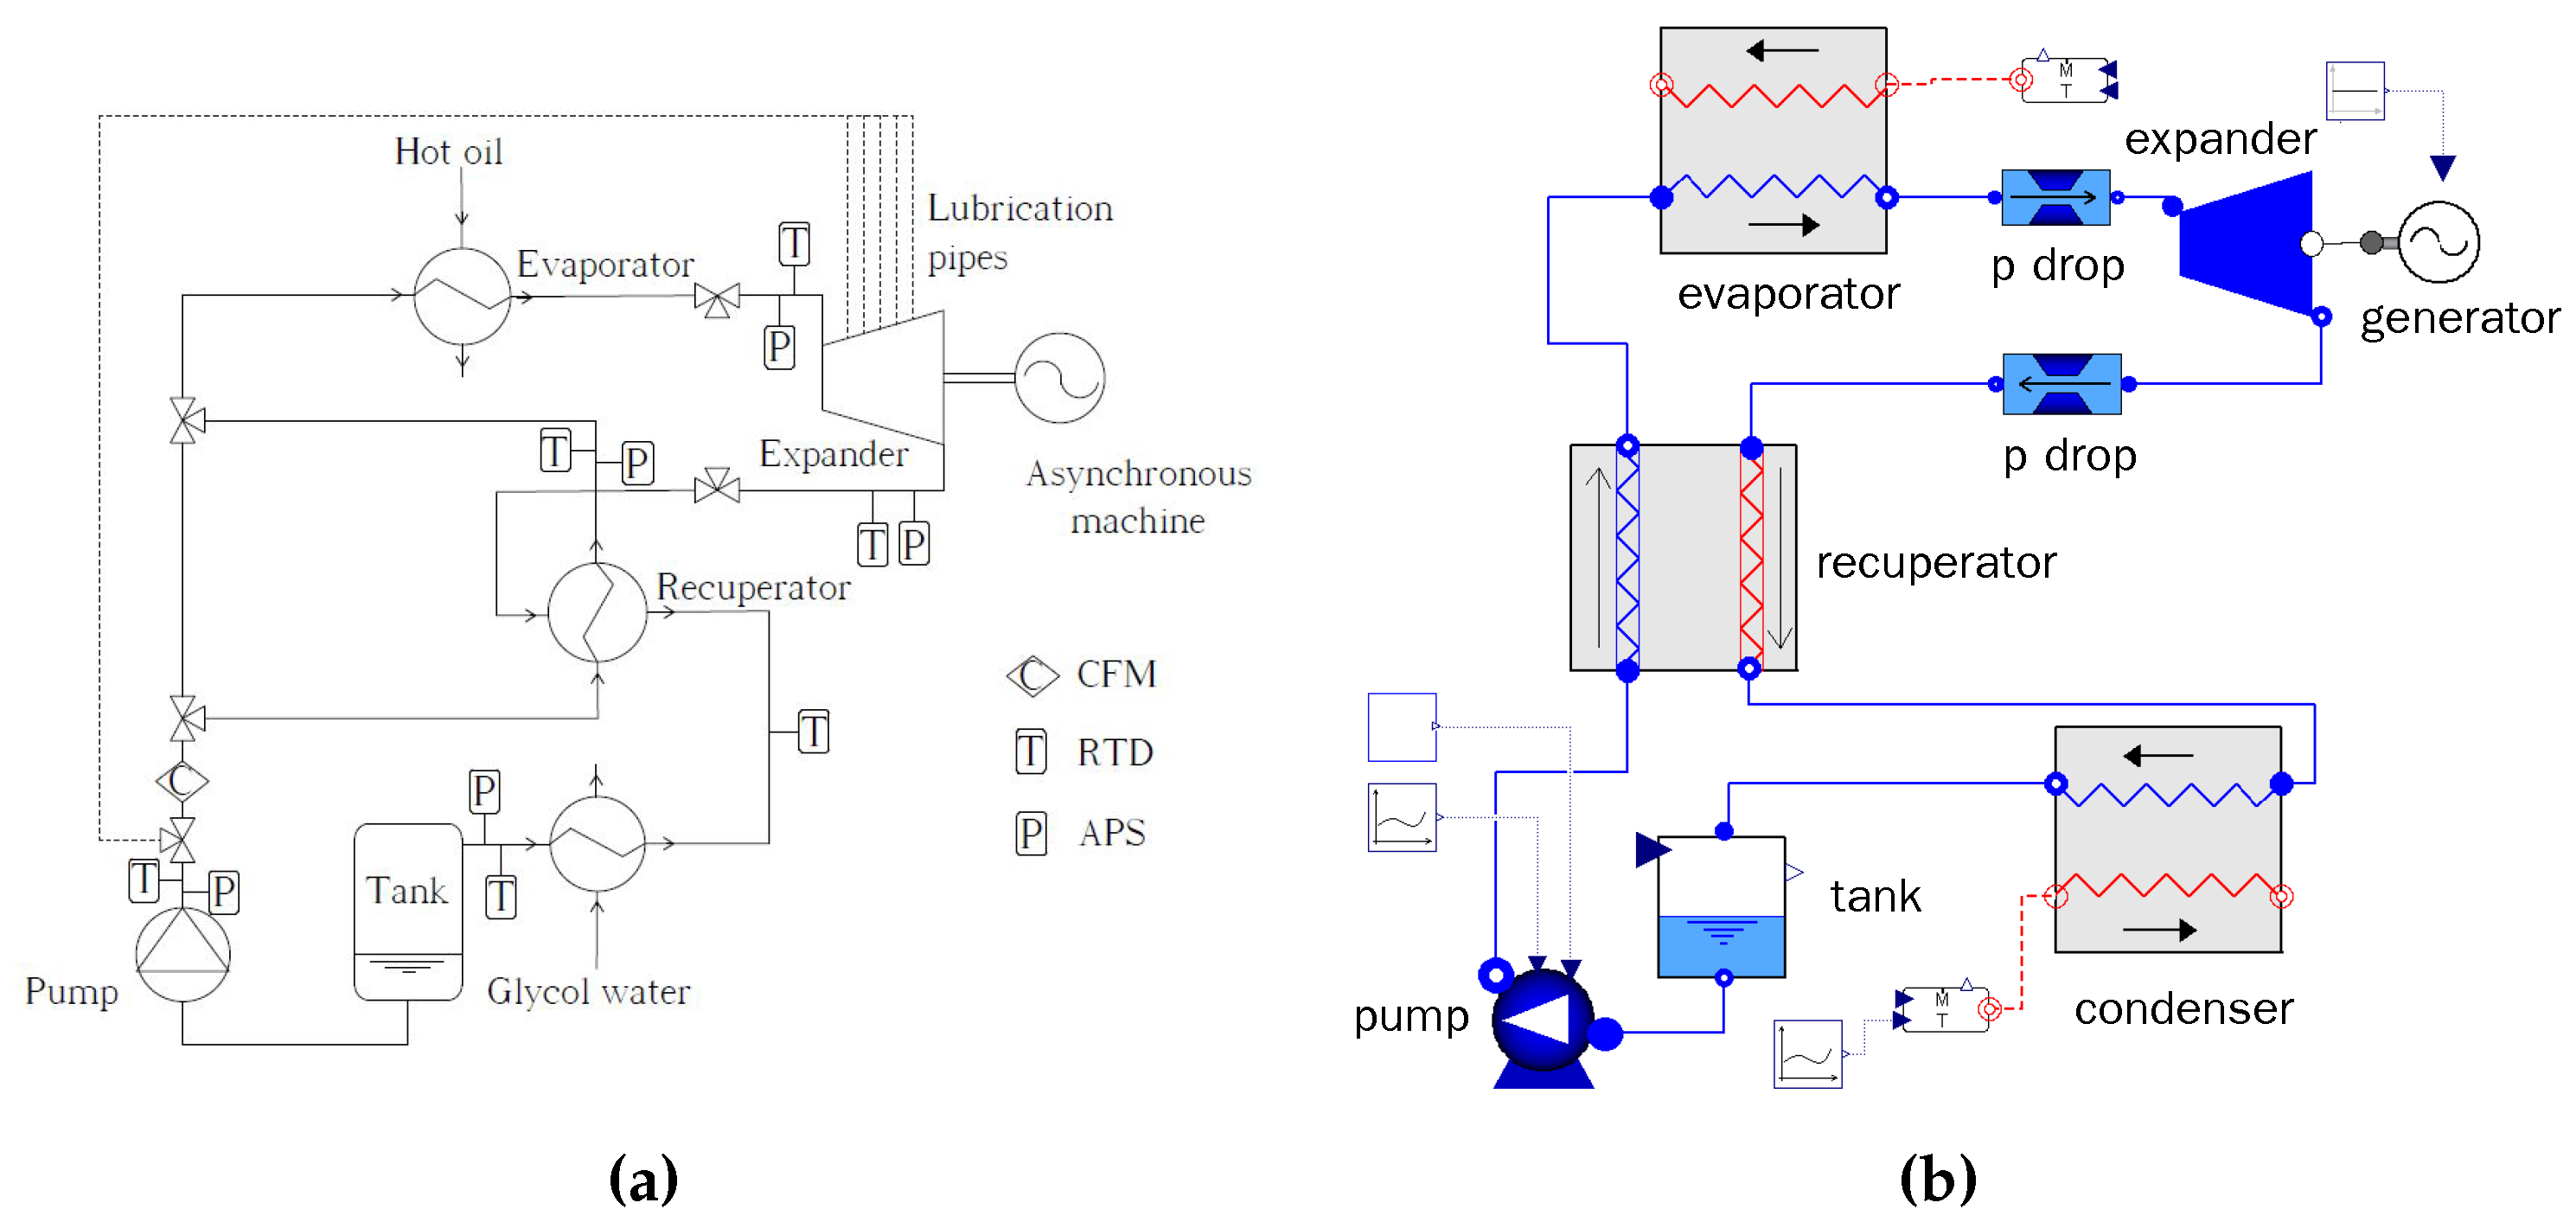 air purifier wiring diagram with Heat Exchanger Process Flow Diagram on Schematic Of Refrigeration System Diagram together with Heat Exchanger Process Flow Diagram likewise Centrifugal Pump Schematic Diagram as well 277554744 Volvo C30 S40 V50 C70 2011 Electrical besides Honeywell Enviracaire Elite Wire Harness.